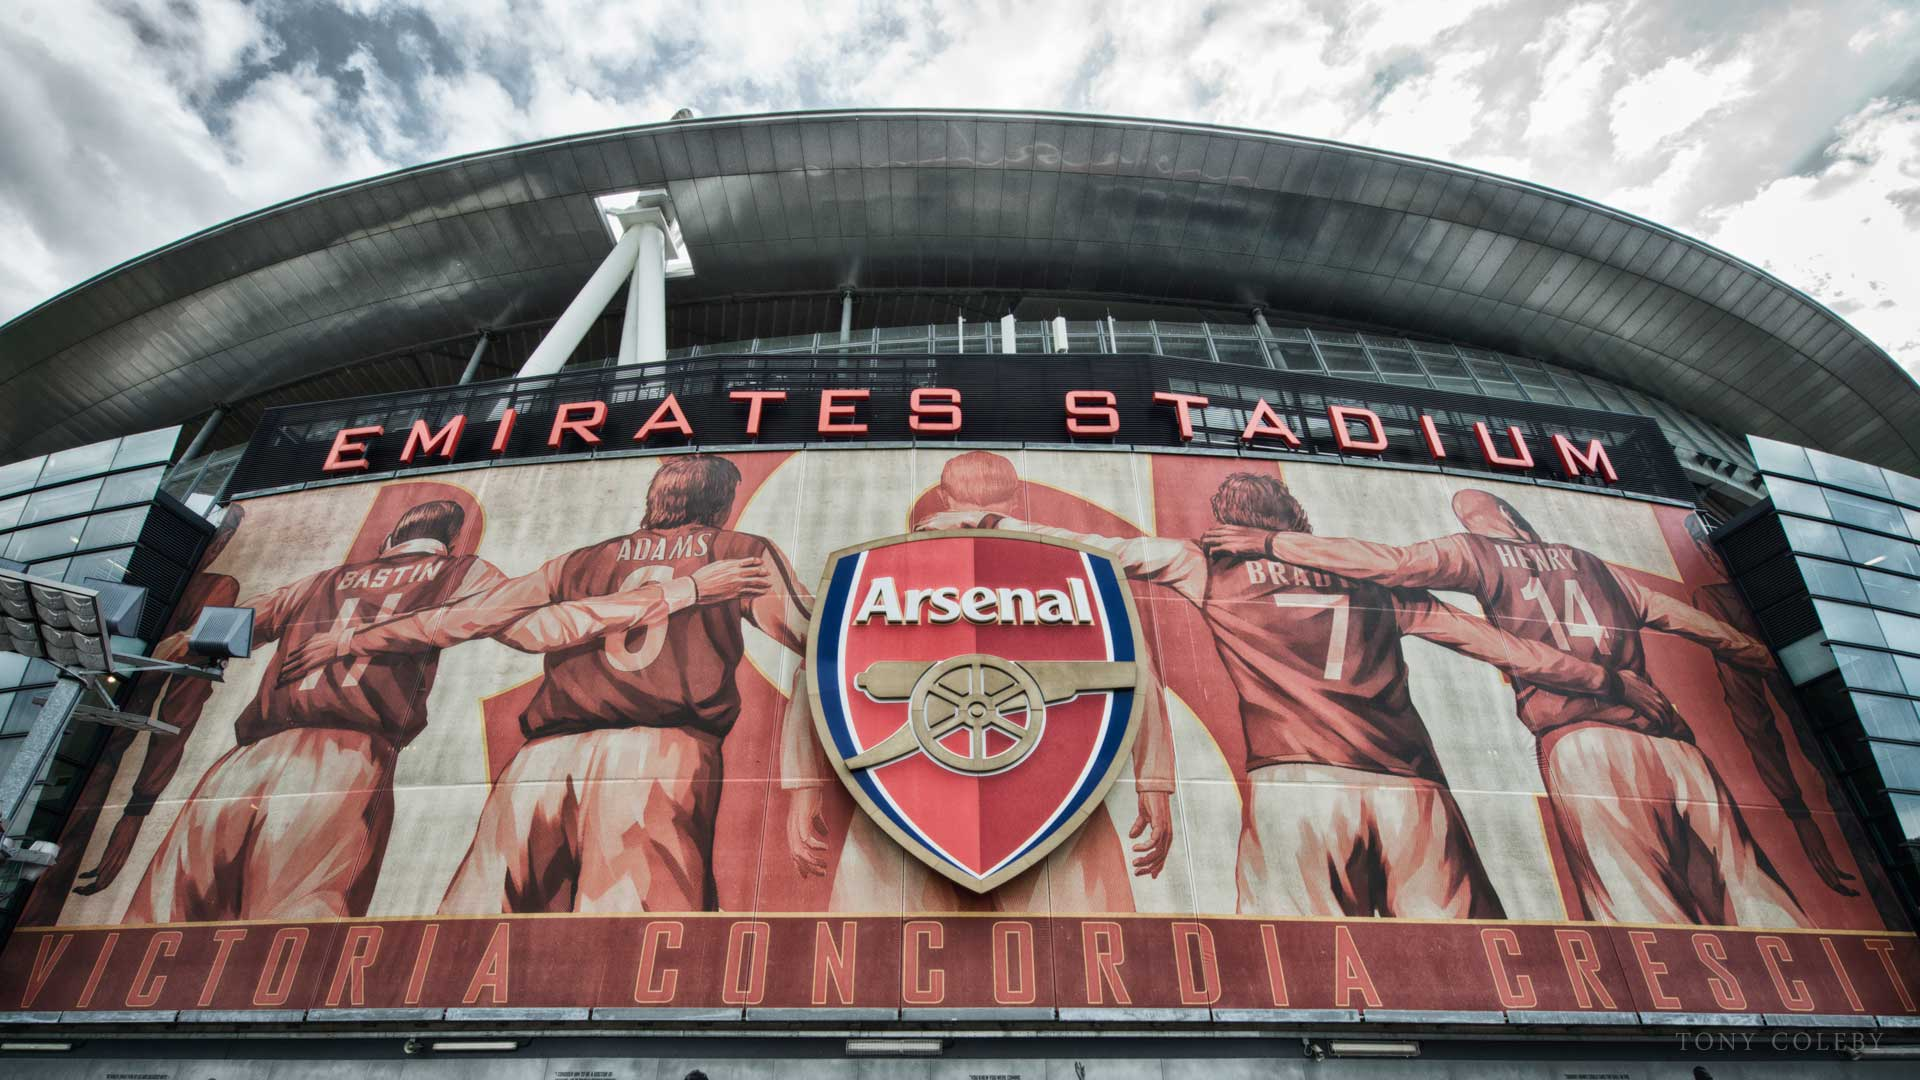 Emirates Stadium, Home of Arsenal Football Club (FA Cup Final Day 2014, Tony Coleby)